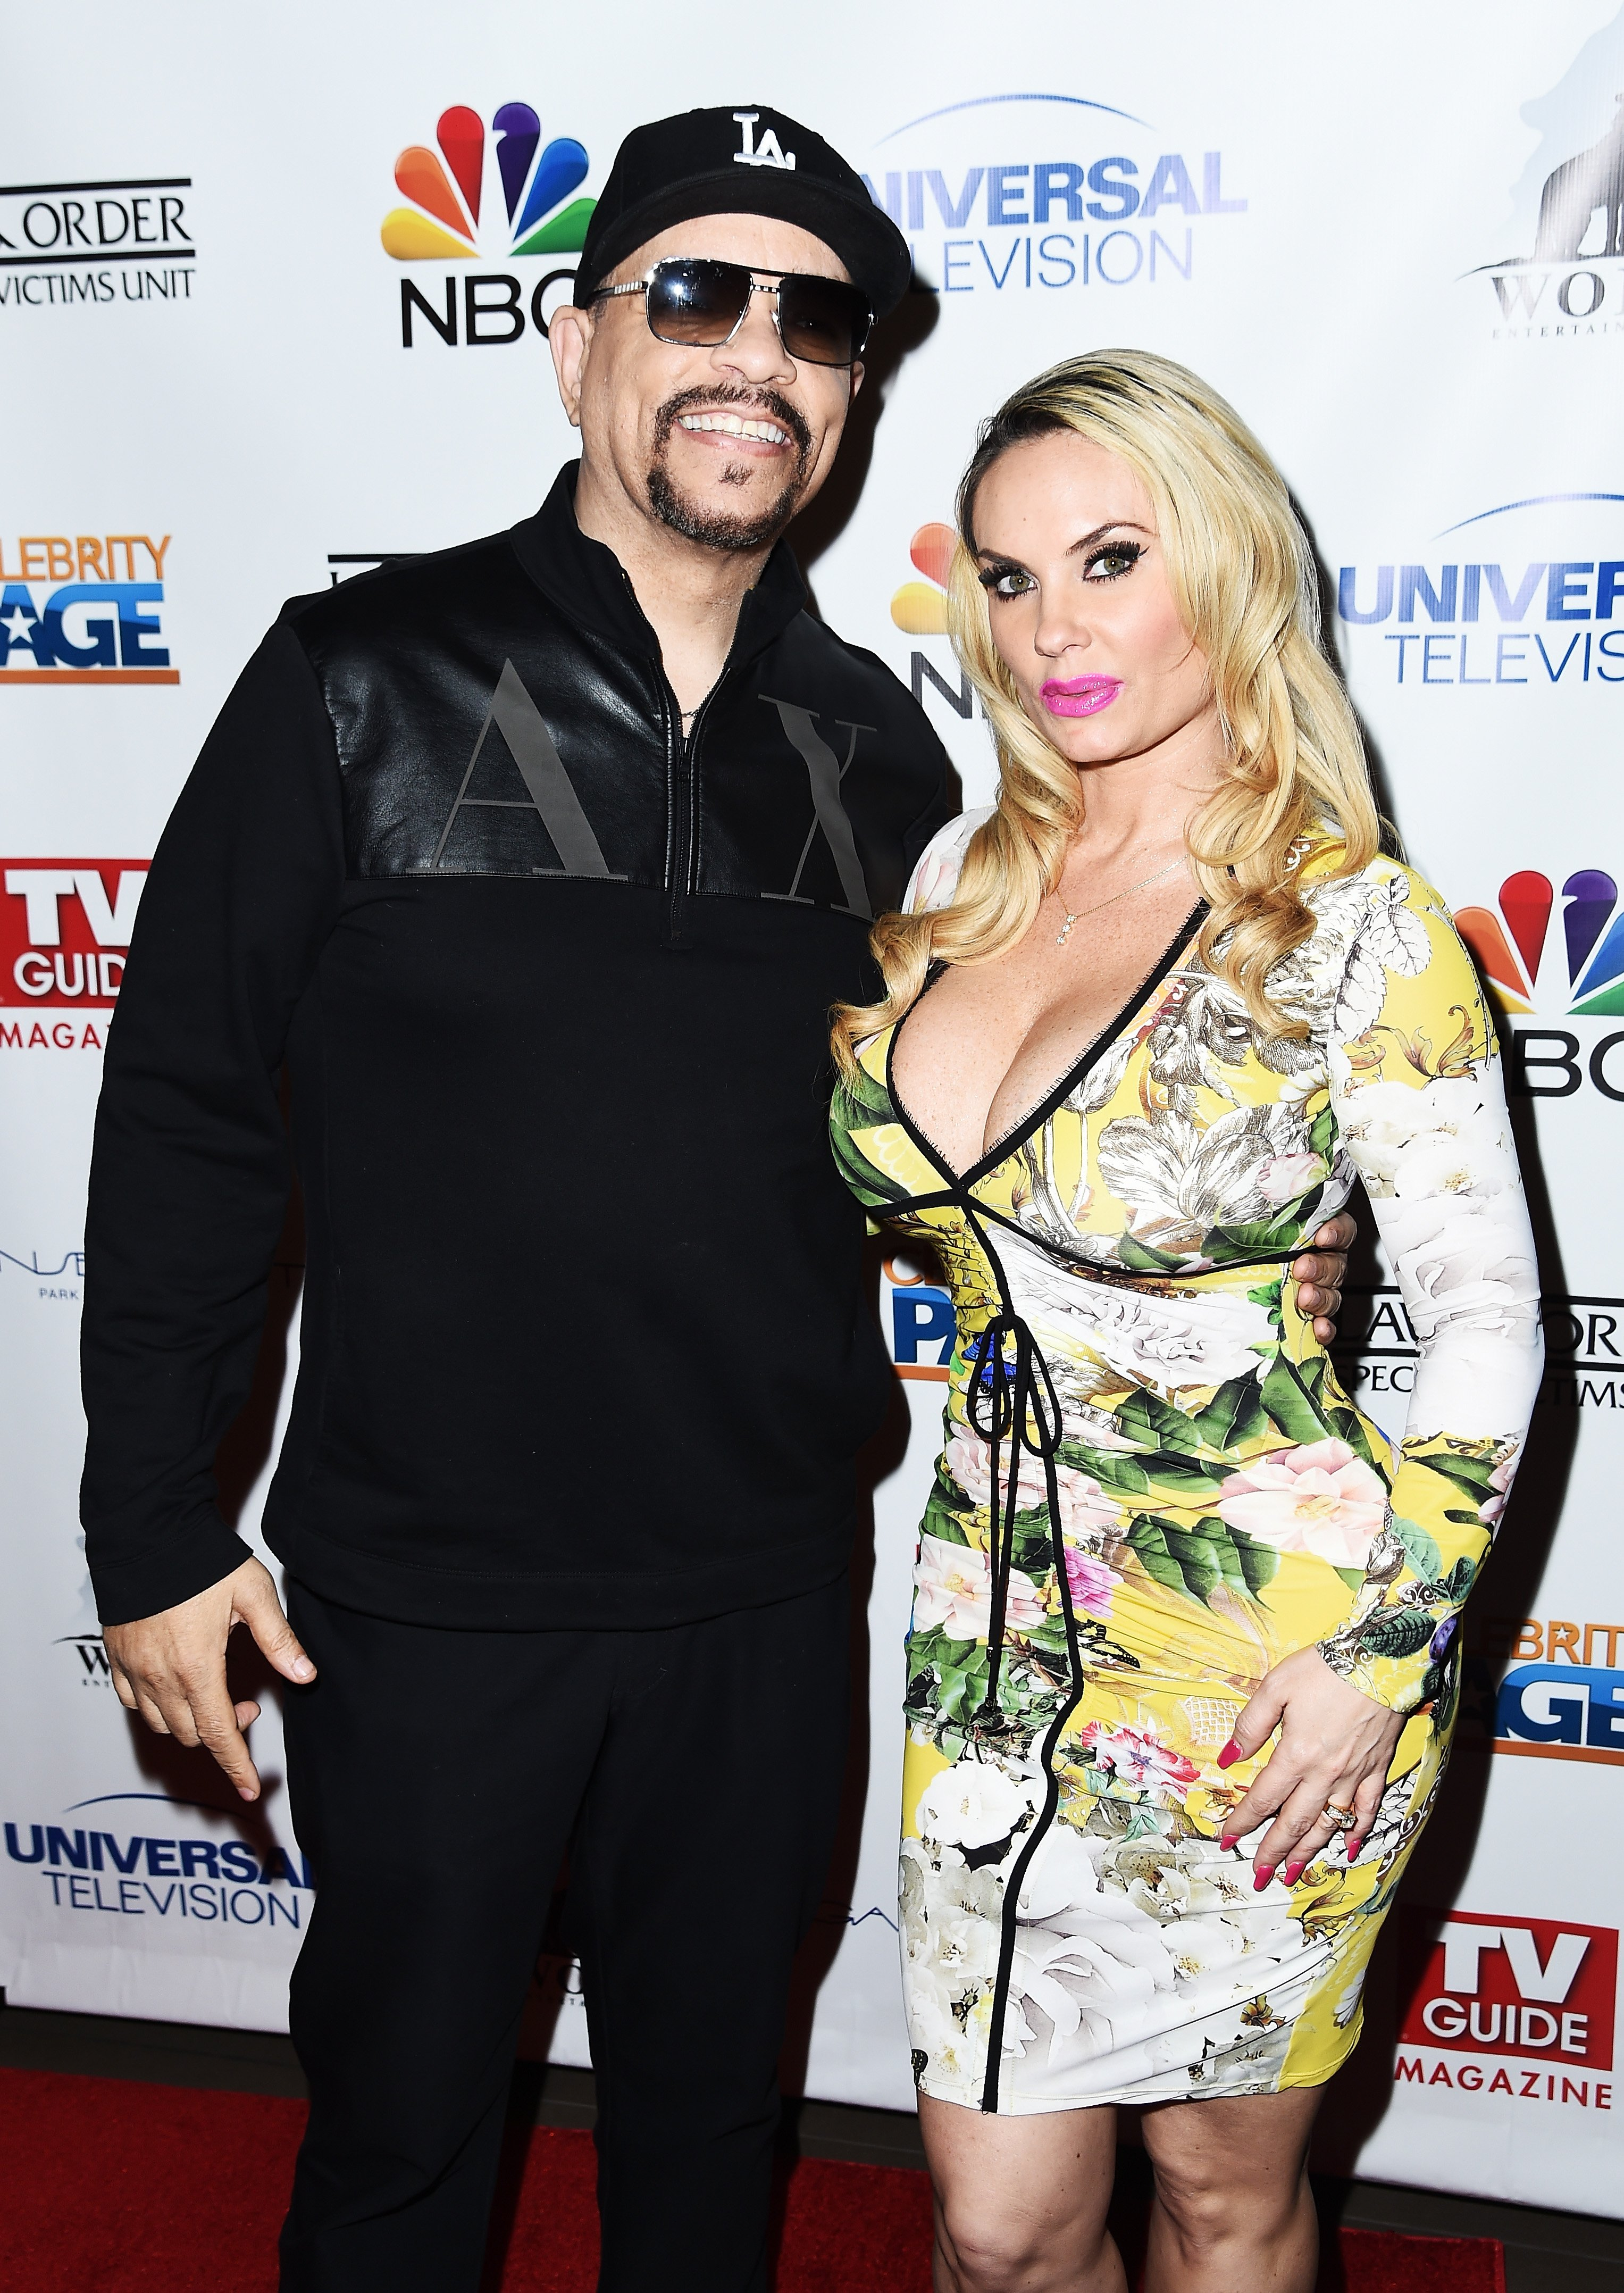 Ice-T and Coco Austin attend a TV Guide Event in January 2017 | Photo: Getty Images